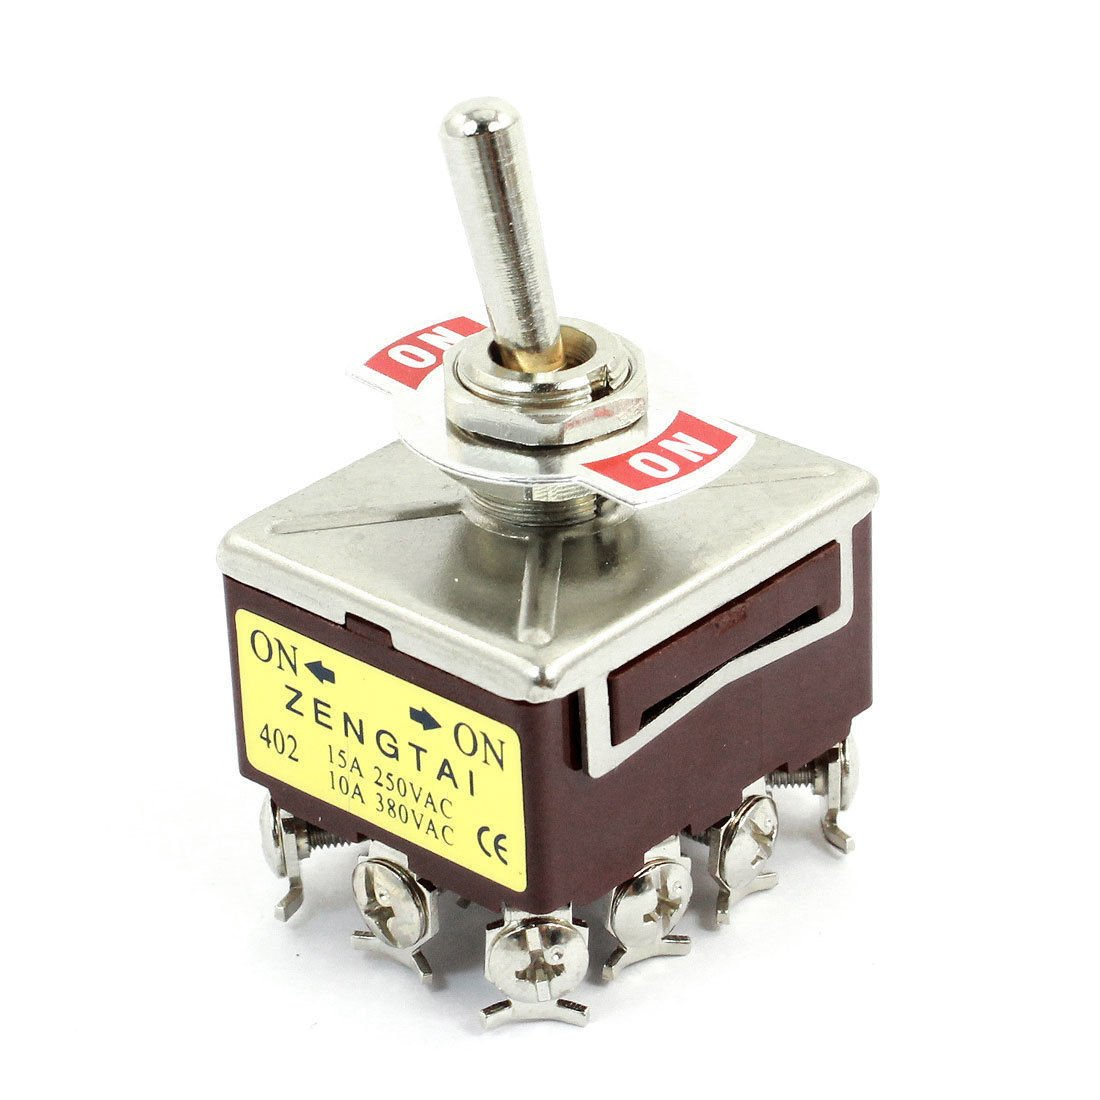 10A/380VAC 15A/250VAC 12 Terminals 3PDT ON/ON 2 Position Toggle Switch E-TEN402